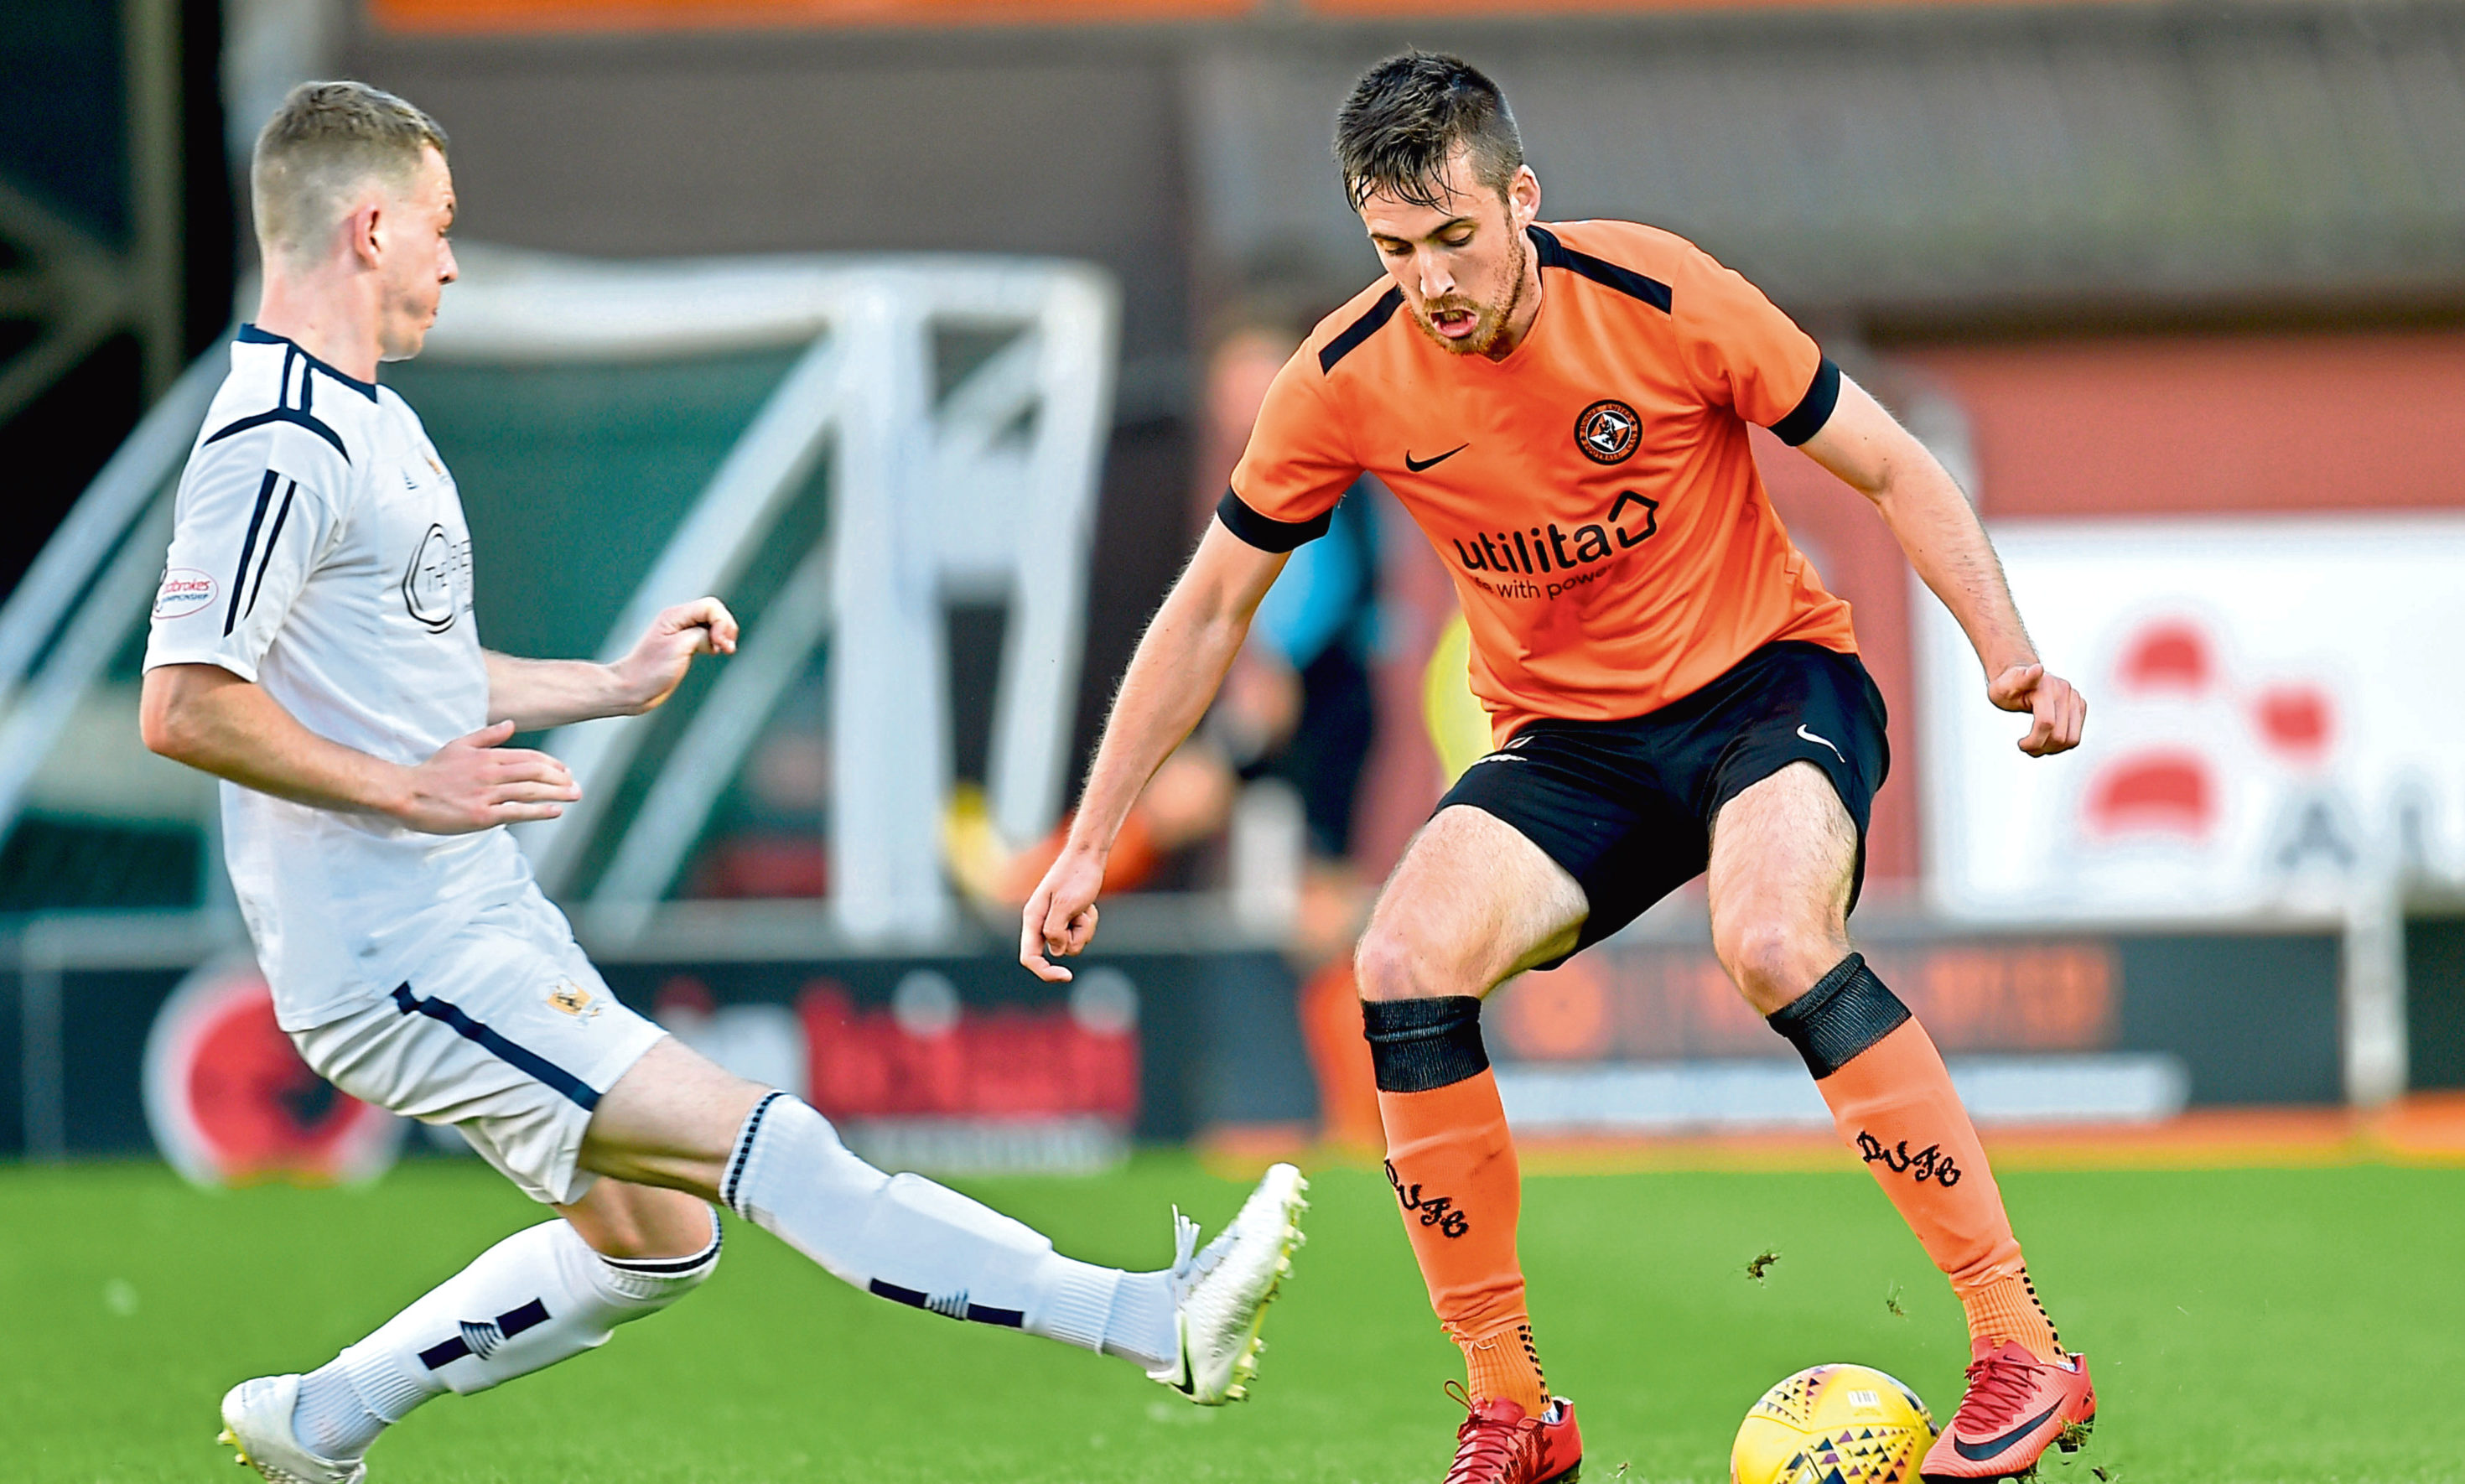 Dundee United's Callum Booth in action against Alloa's Adam Brown